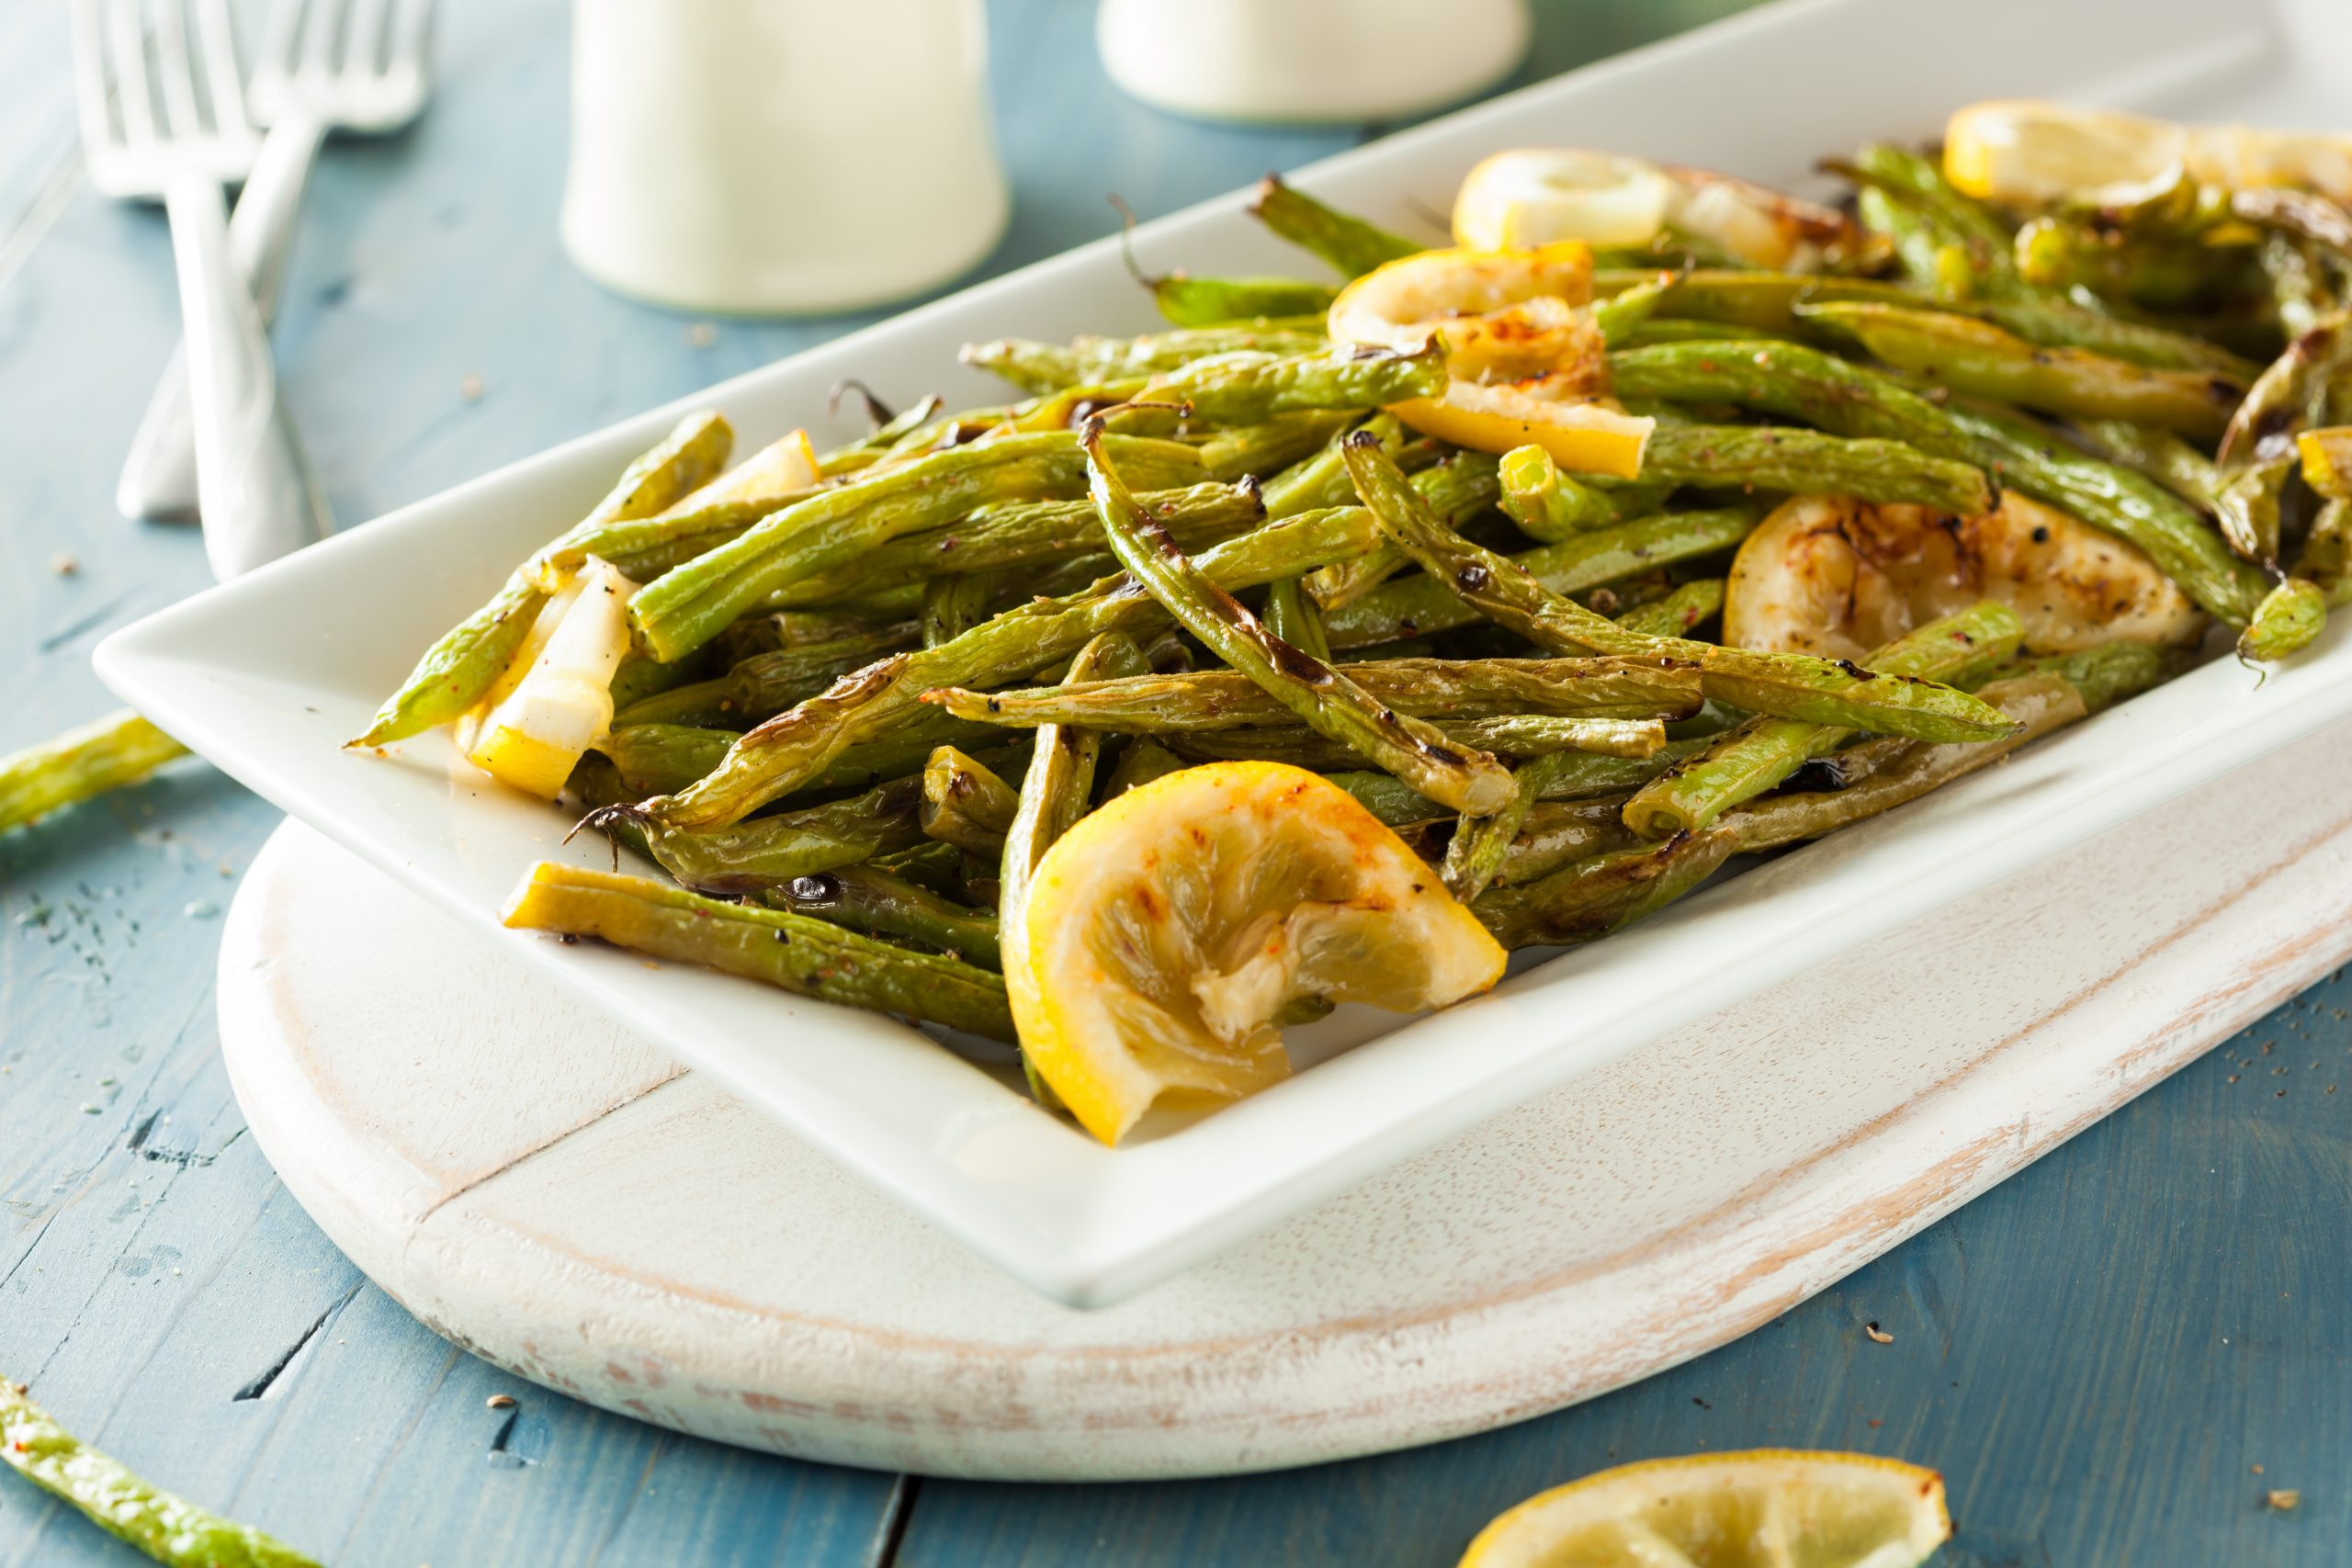 Gourmet green beans for tonight's side dish